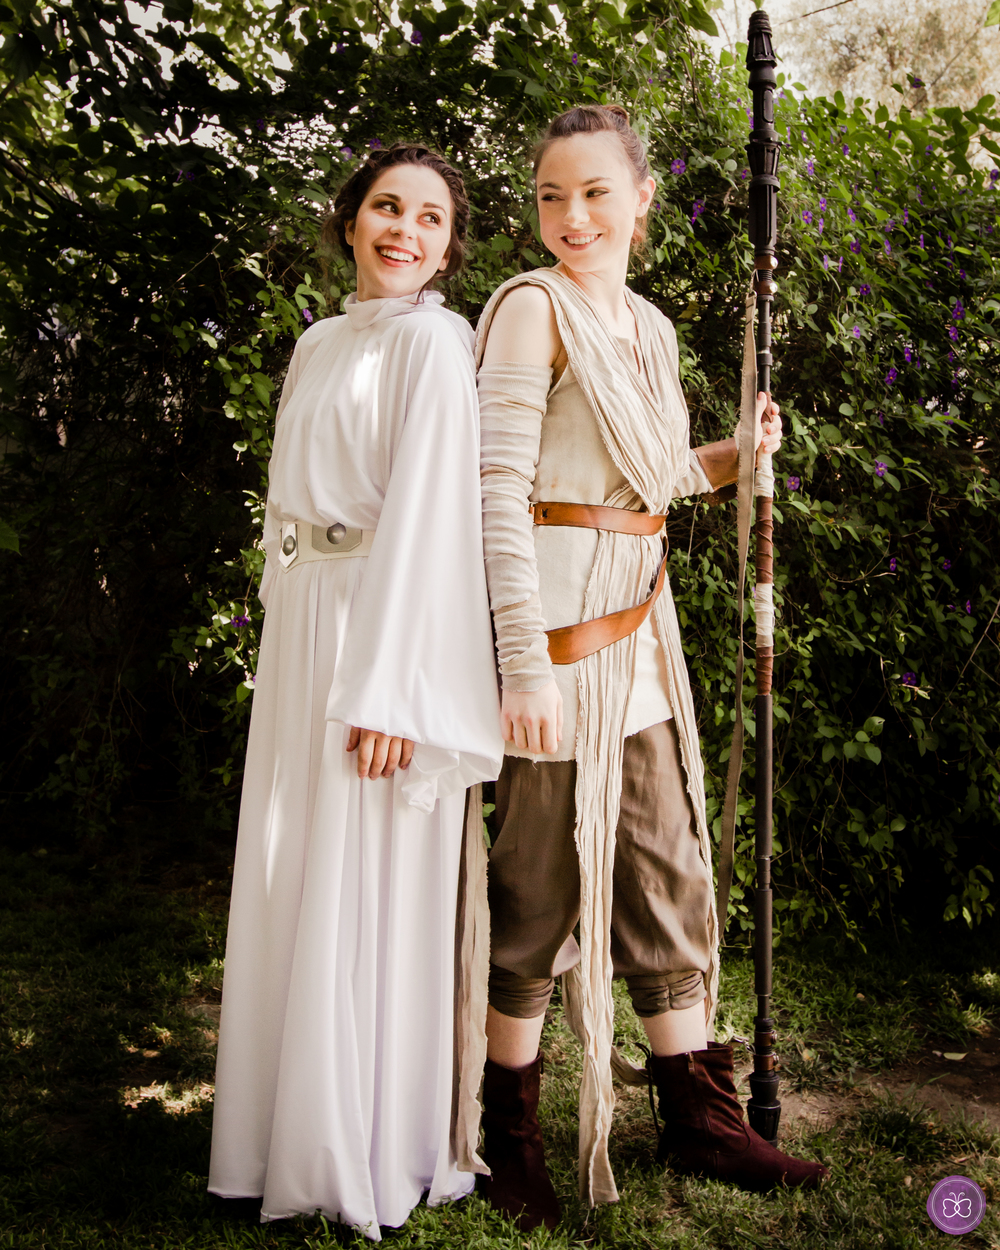 Make your Star Wars themed party multi-generational + super girl-powered with not one, but two intergalactic, fierce females. Our Princess Leia and Rey lookalikes create a stellar atmosphere performing together.